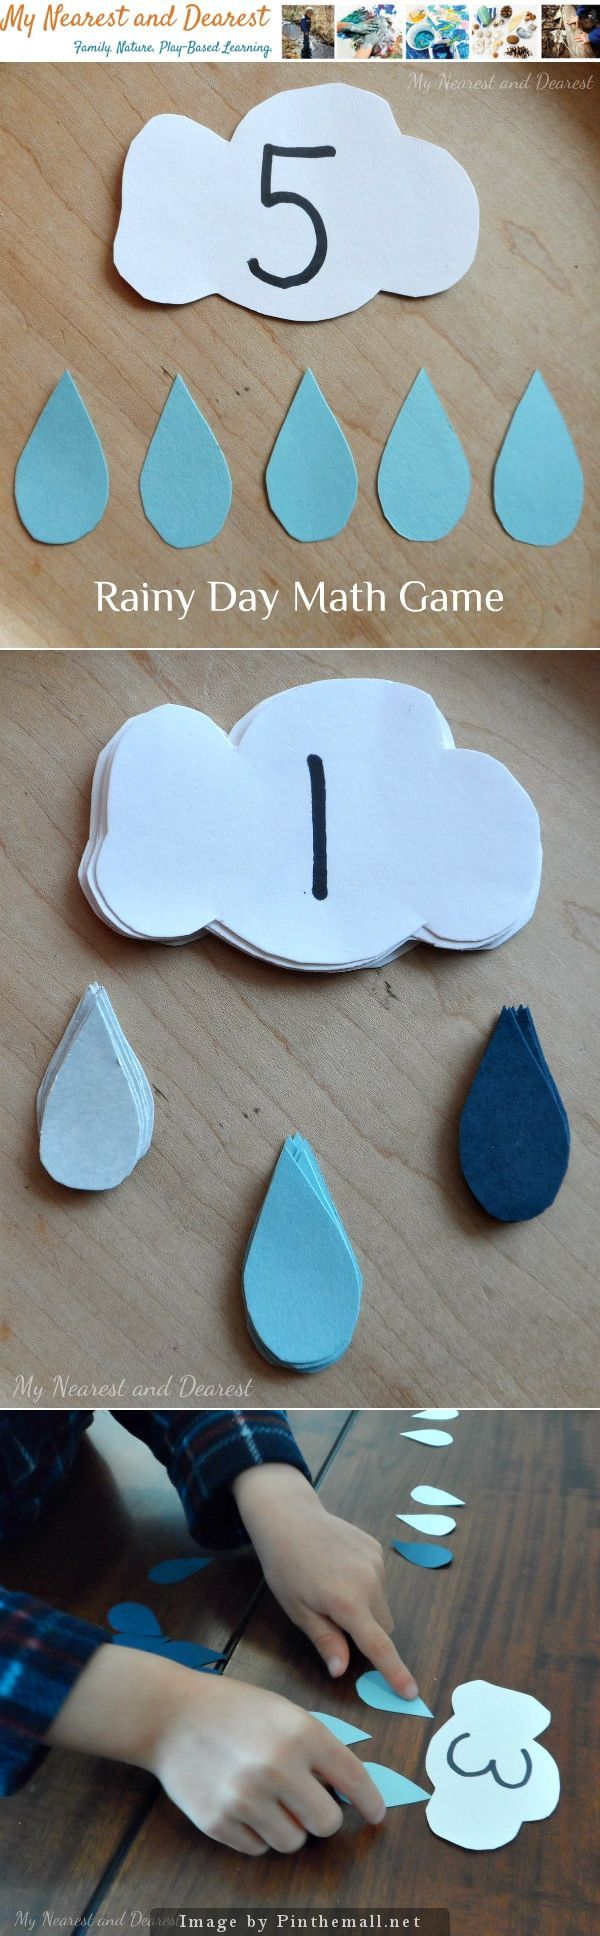 Rainy Day Math Games – This easy-to-make math game is inspired by a rainy day…and perfect for playing on a rainy day! It's a